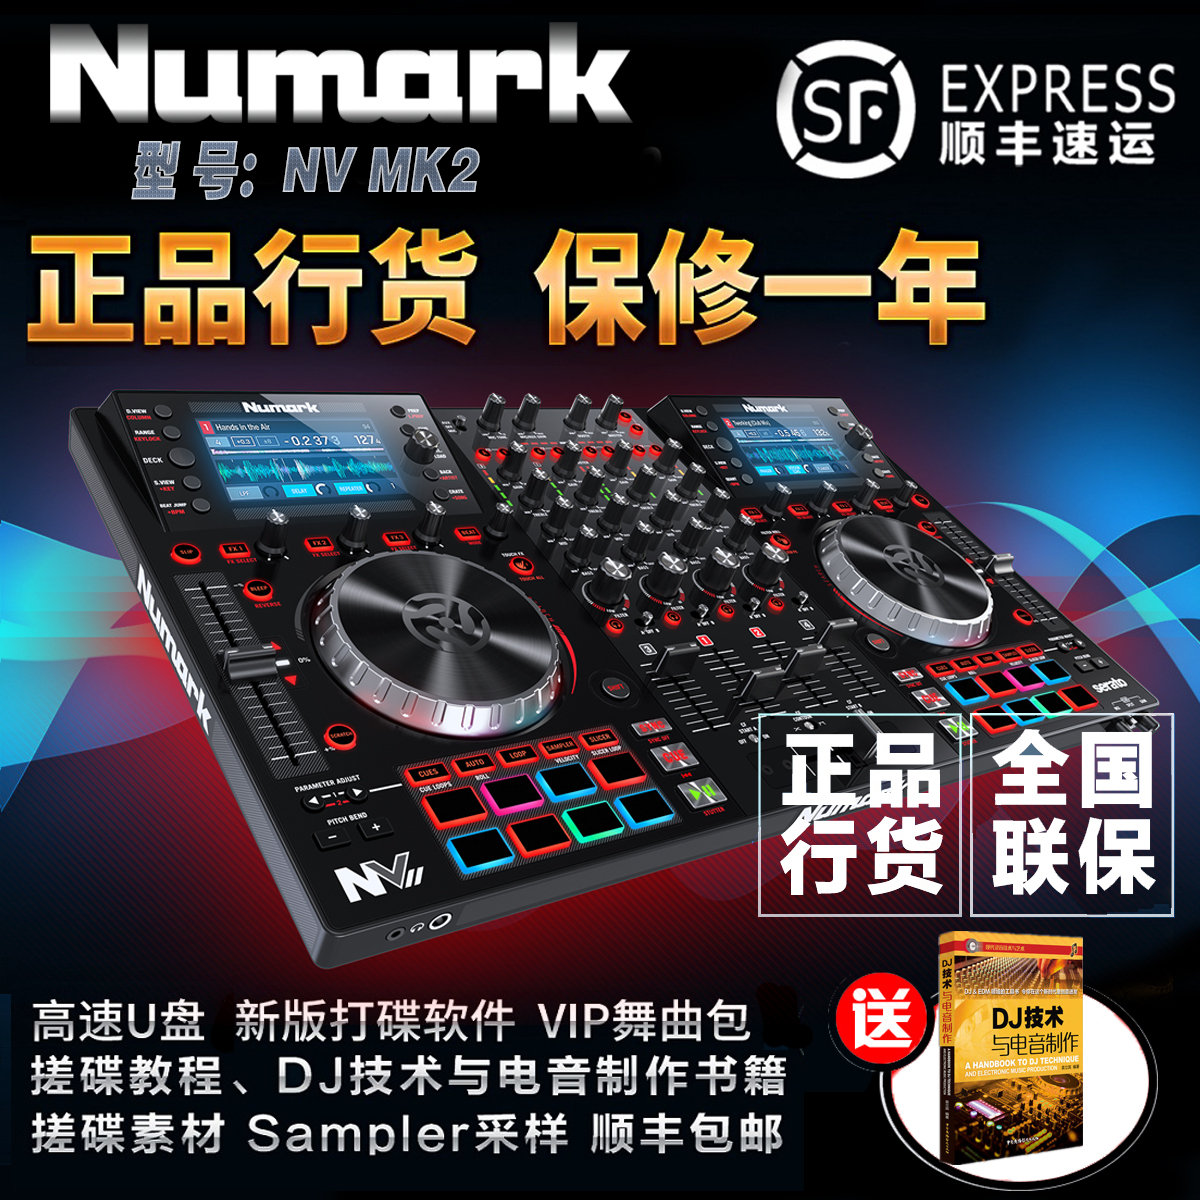 Luma NUMARK NV II MK2 Digital DJ DJ Controller Support serato dj Software